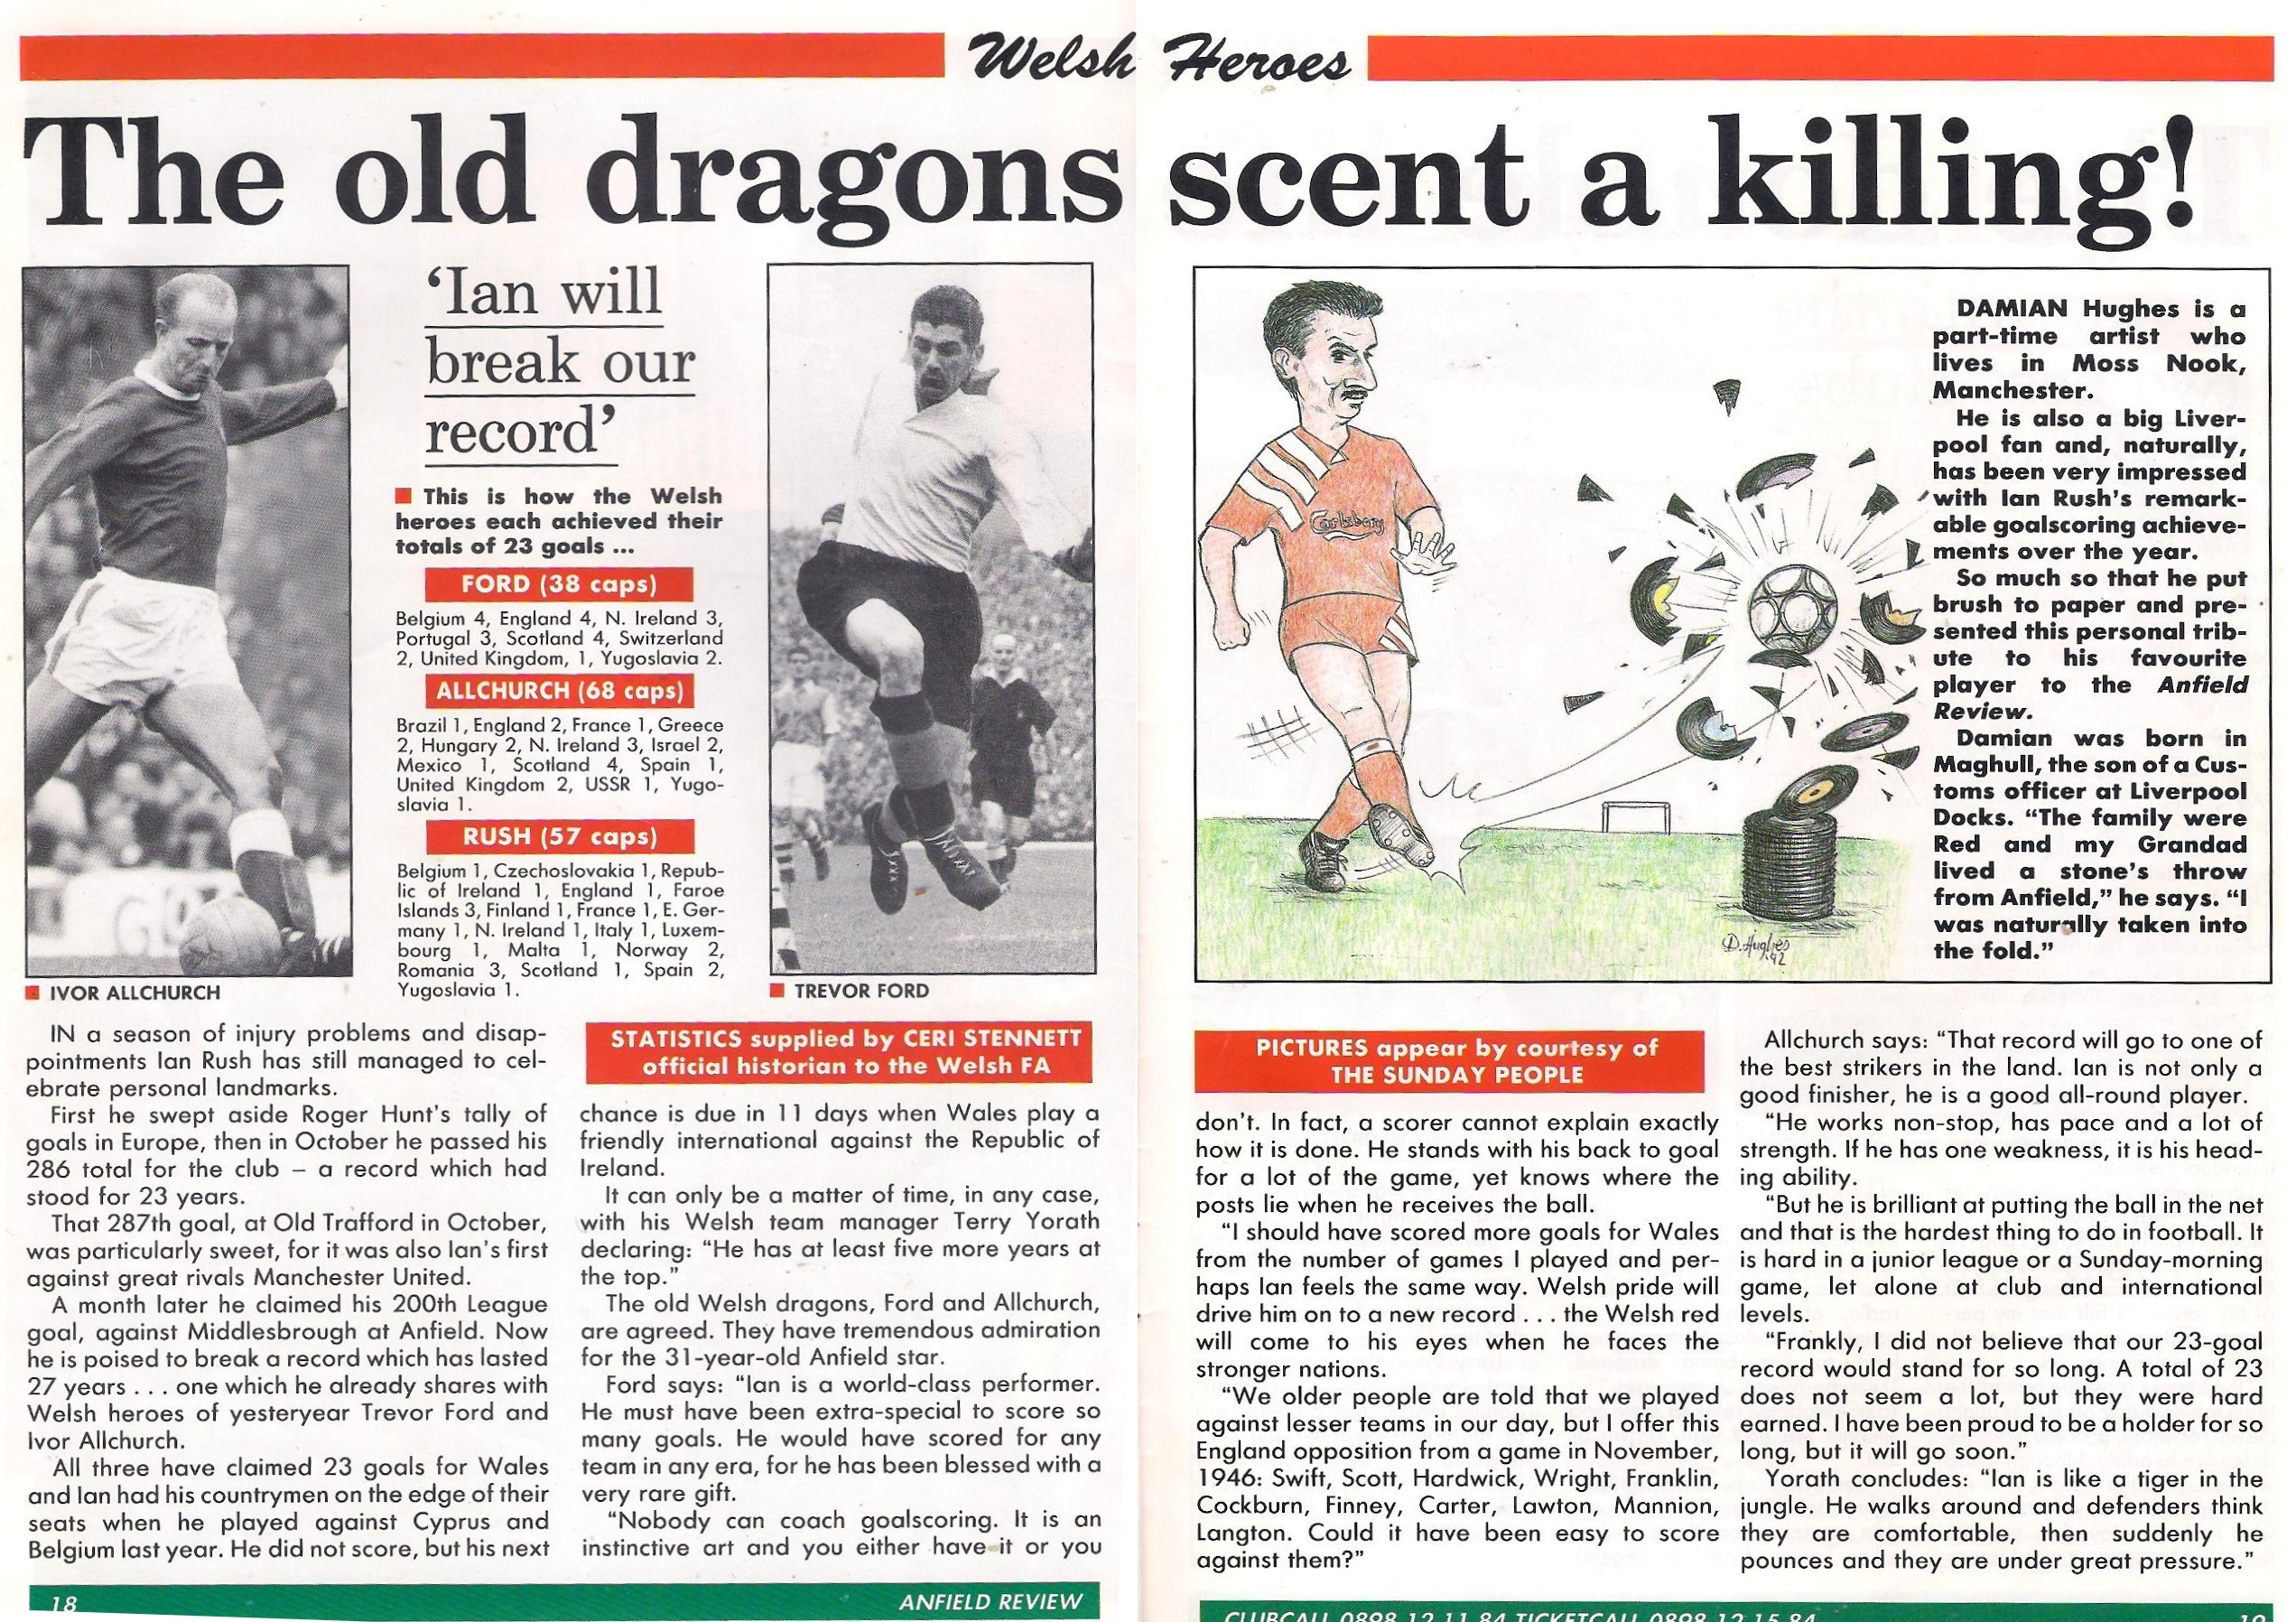 The Welsh dragons scent a killing